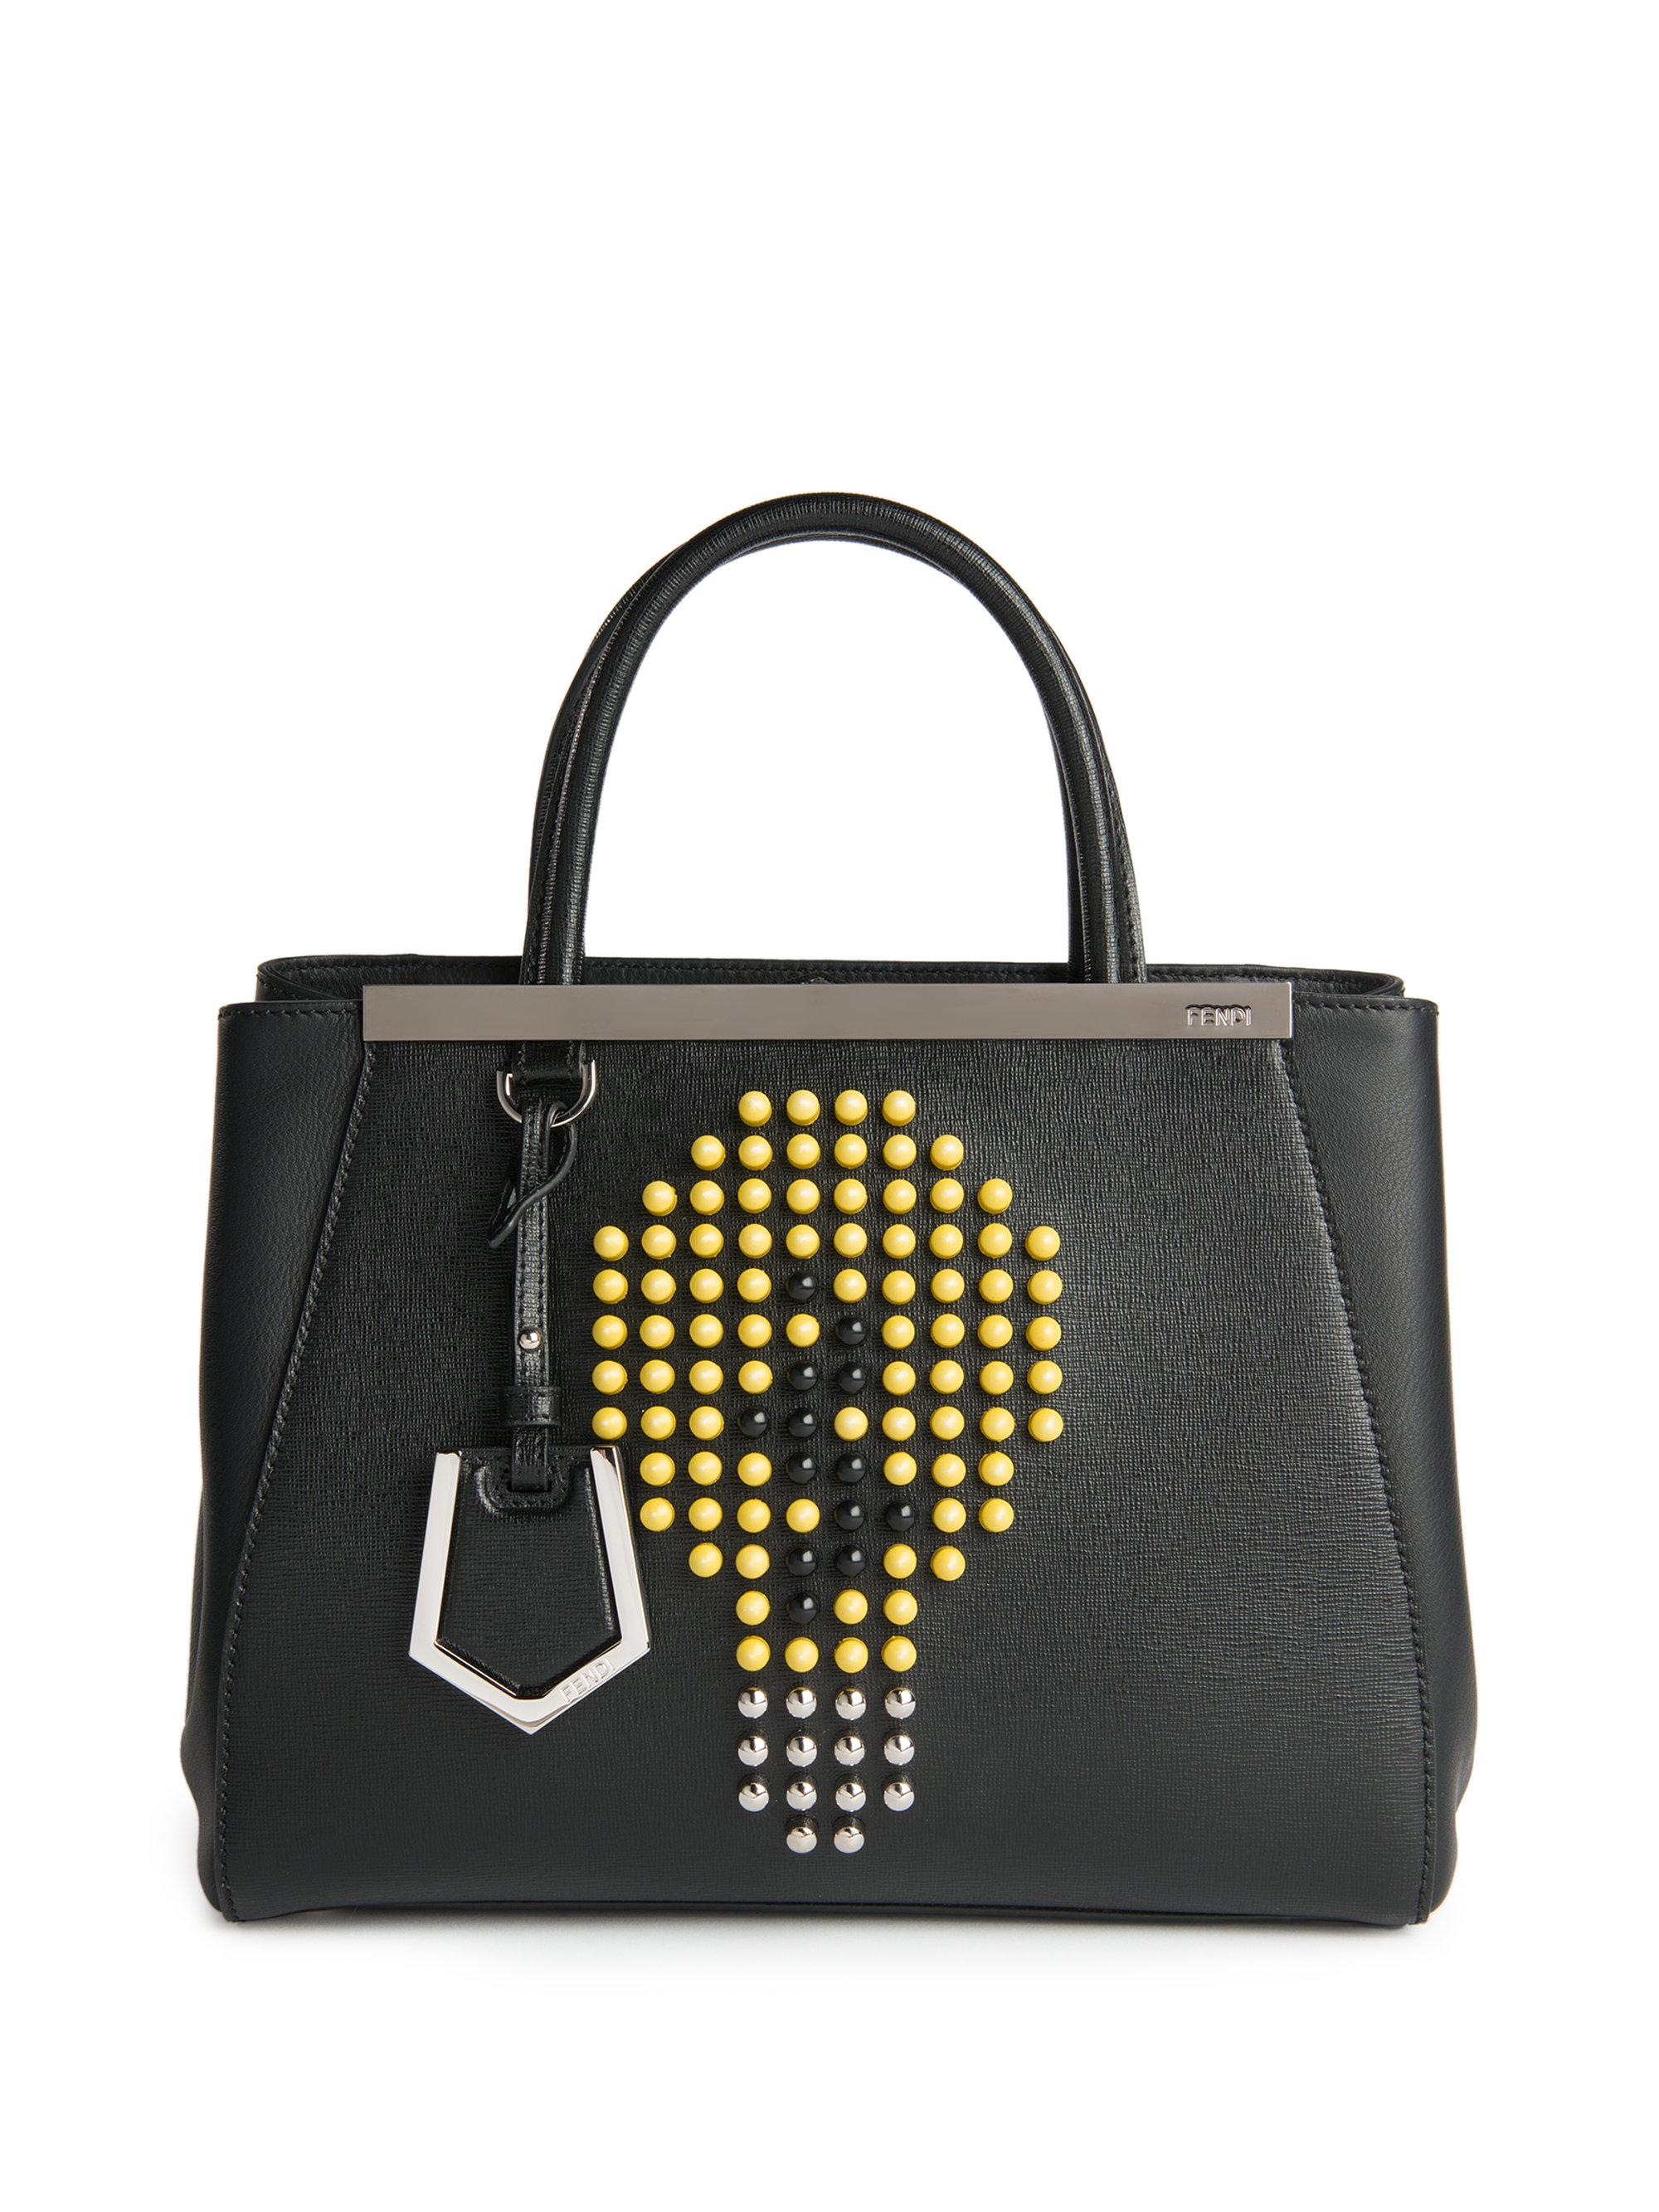 d2b52124447 Gallery. Previously sold at  Saks Fifth Avenue · Women s Fendi Monster  Women s Fendi 2jours Women s Bag Charms ...